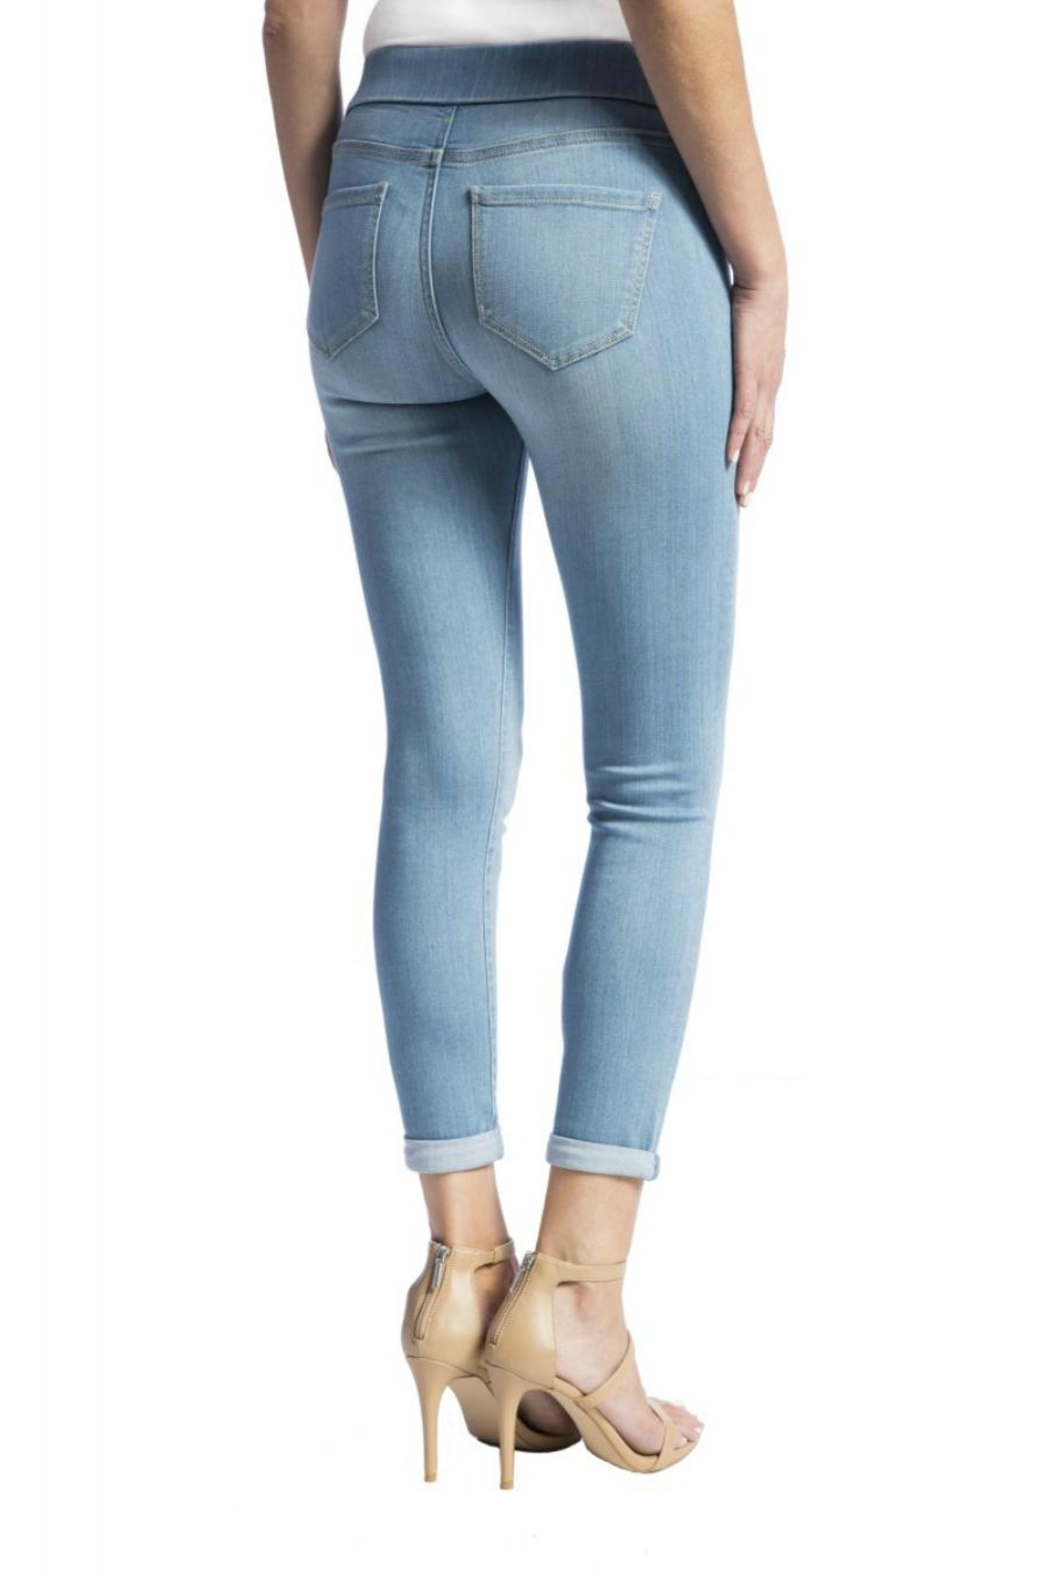 Liverpool Jeans Company Cropped Pull-On Jeans - Side Cropped Image